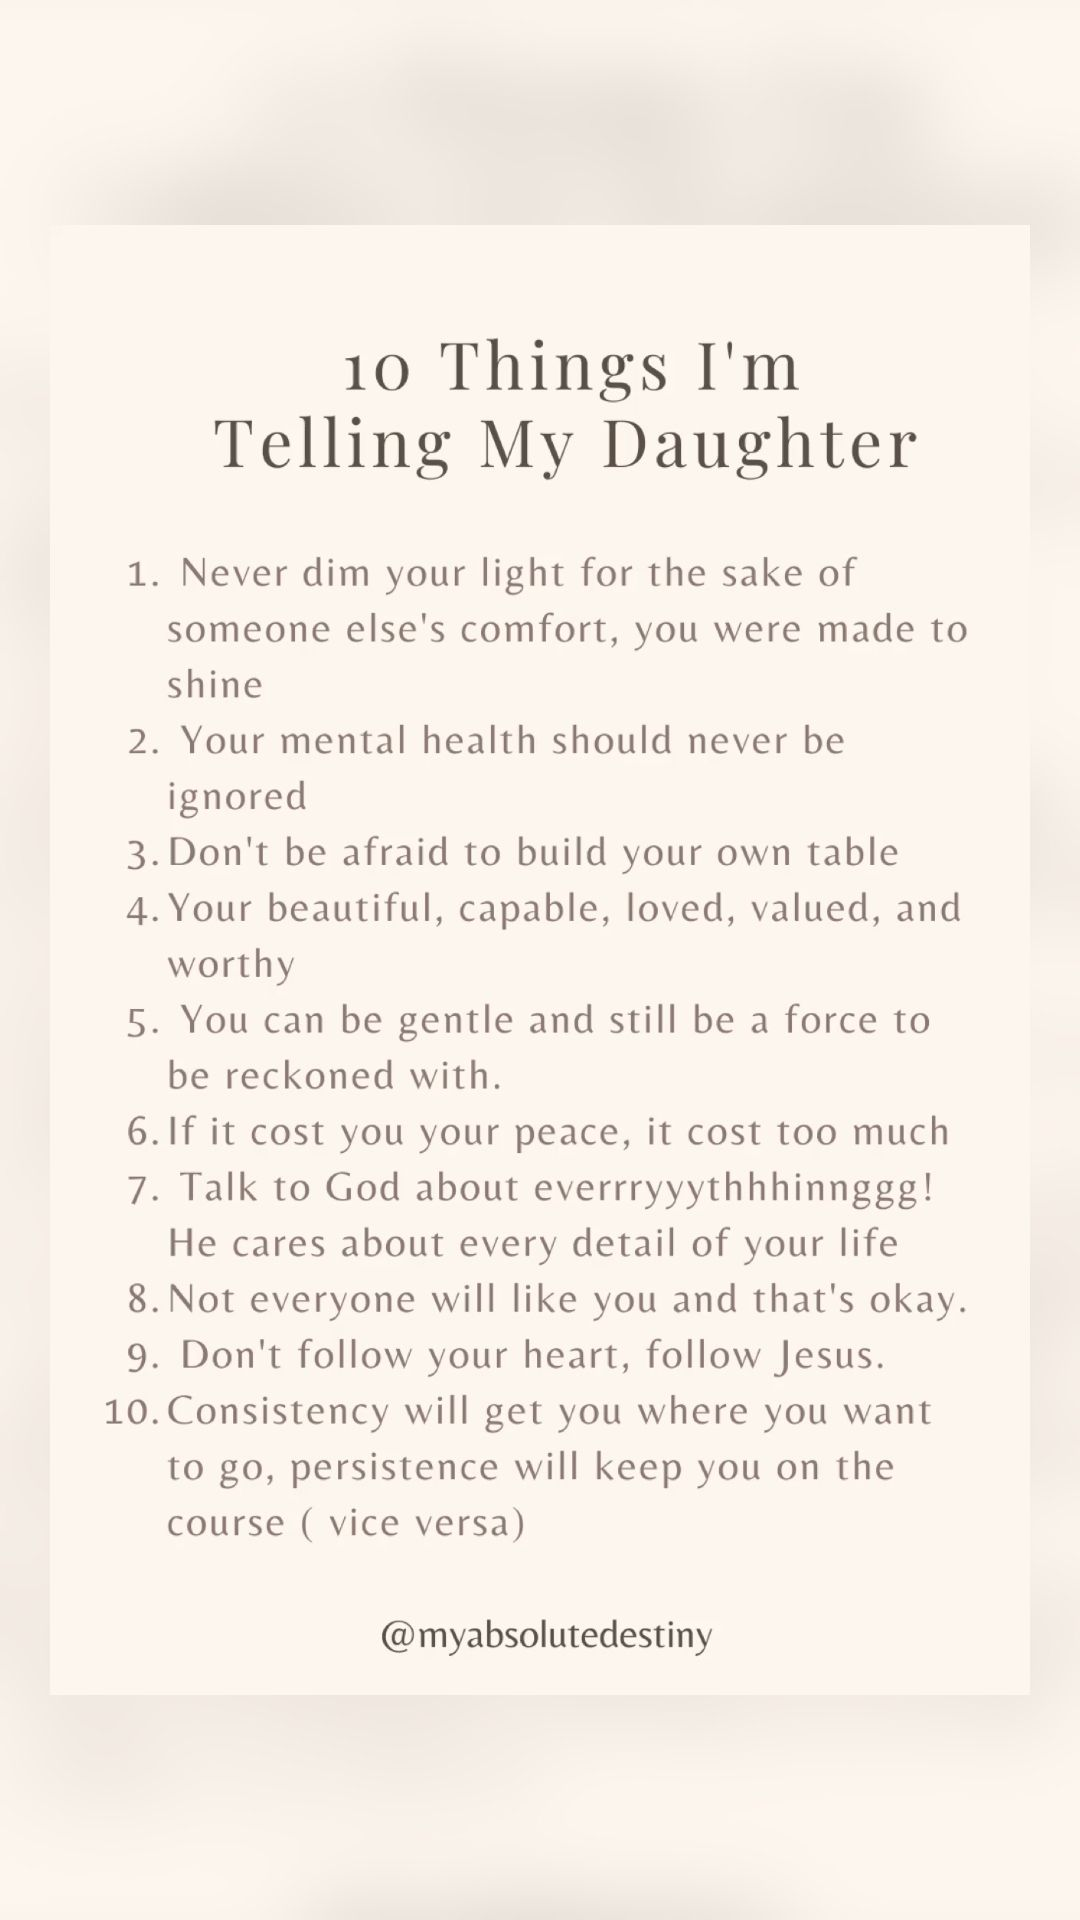 Advice to my Daughter